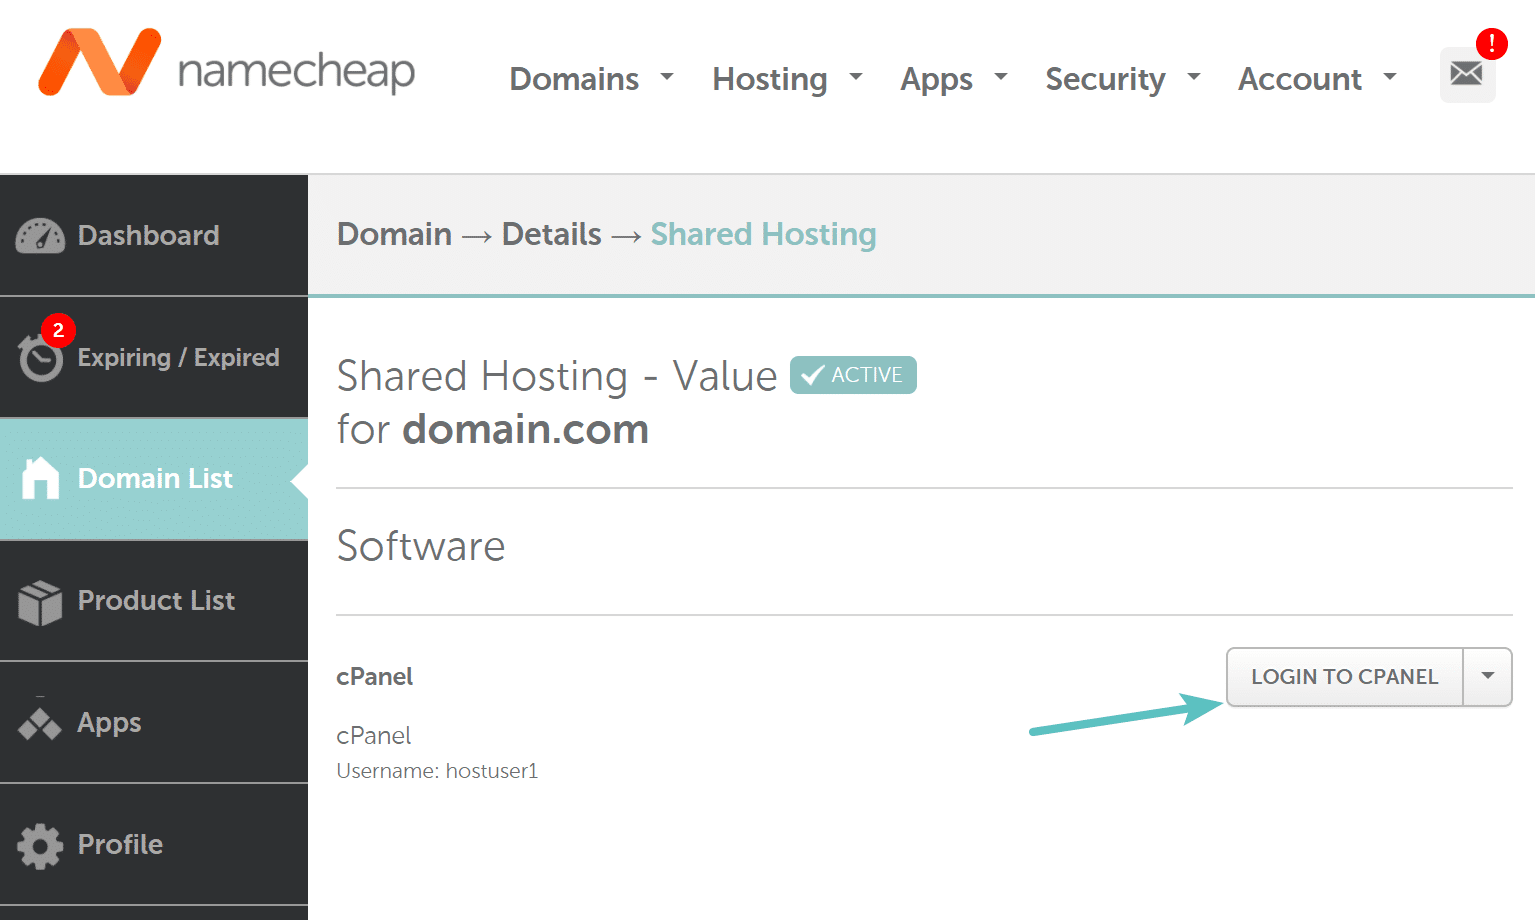 Exemplo do link cPanel no NameCheap